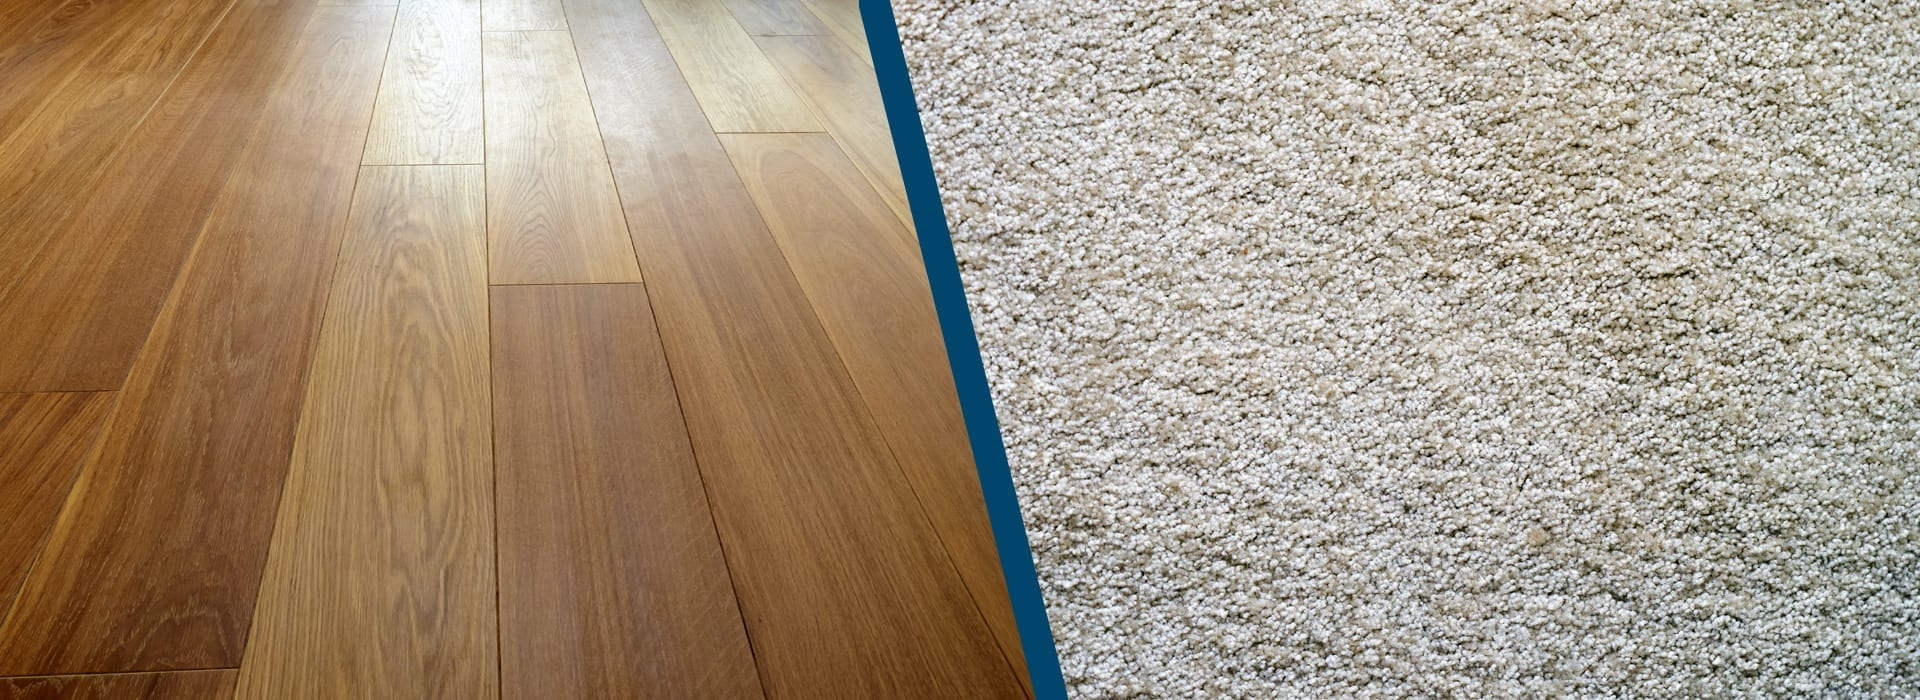 How to Pick the Perfect Flooring for Your Rec Room